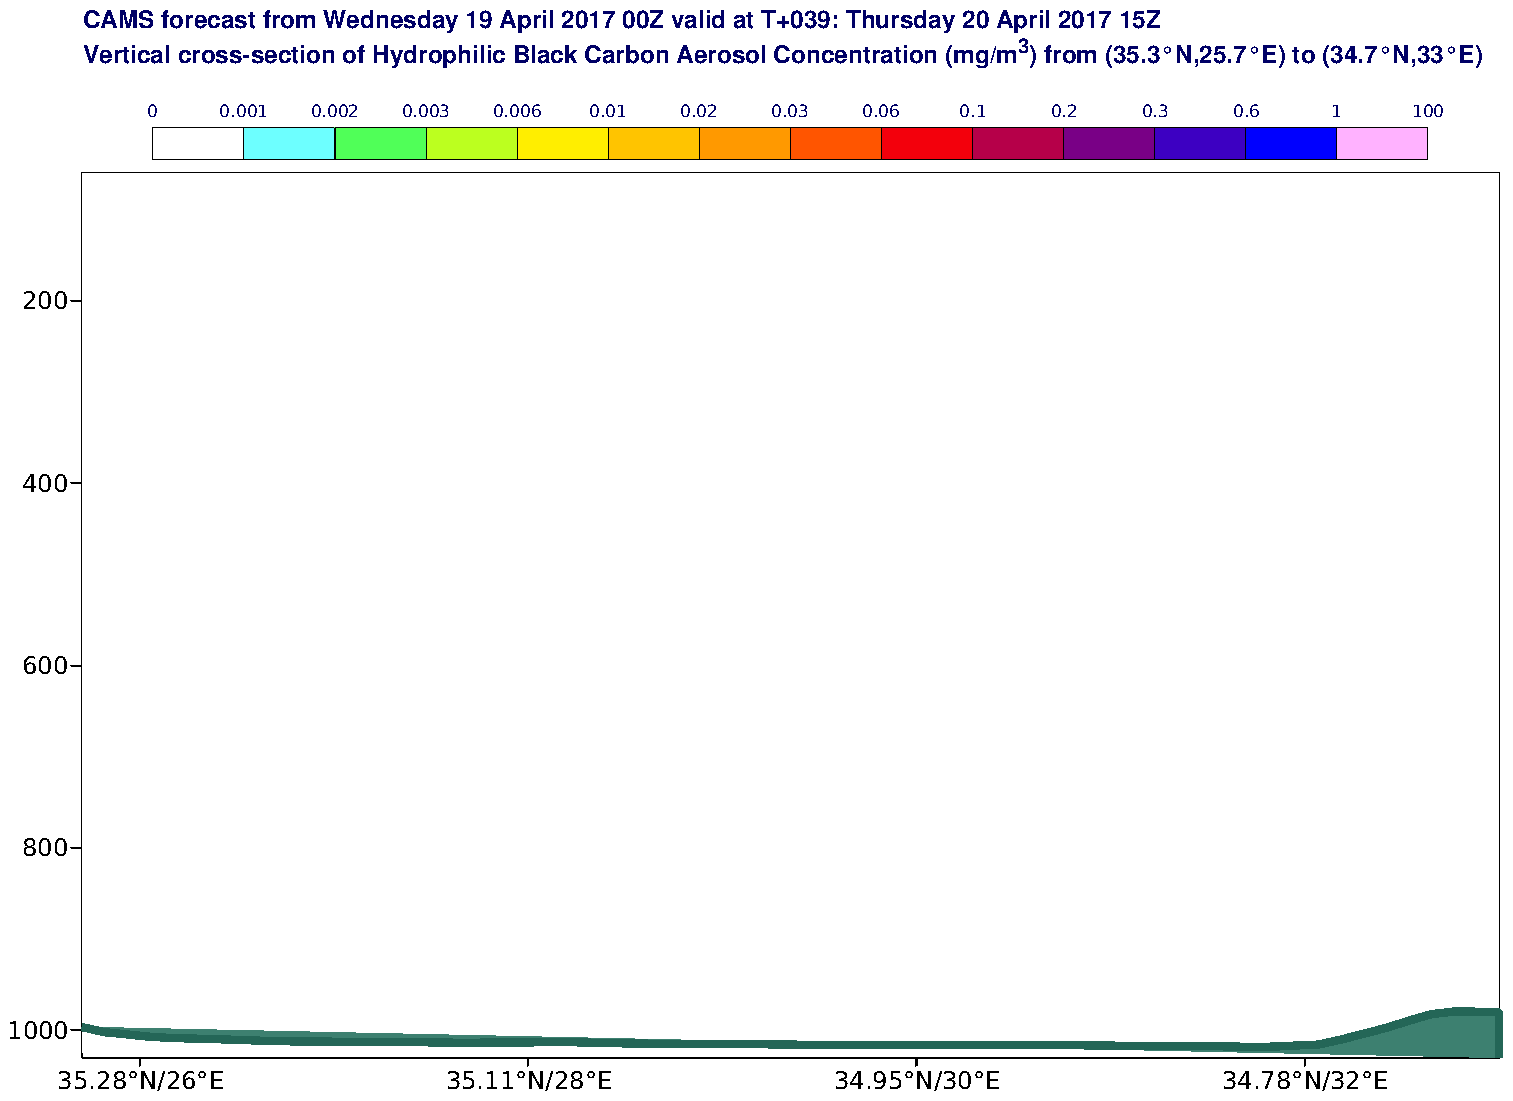 Vertical cross-section of Hydrophilic Black Carbon Aerosol Concentration (mg/m3) valid at T39 - 2017-04-20 15:00